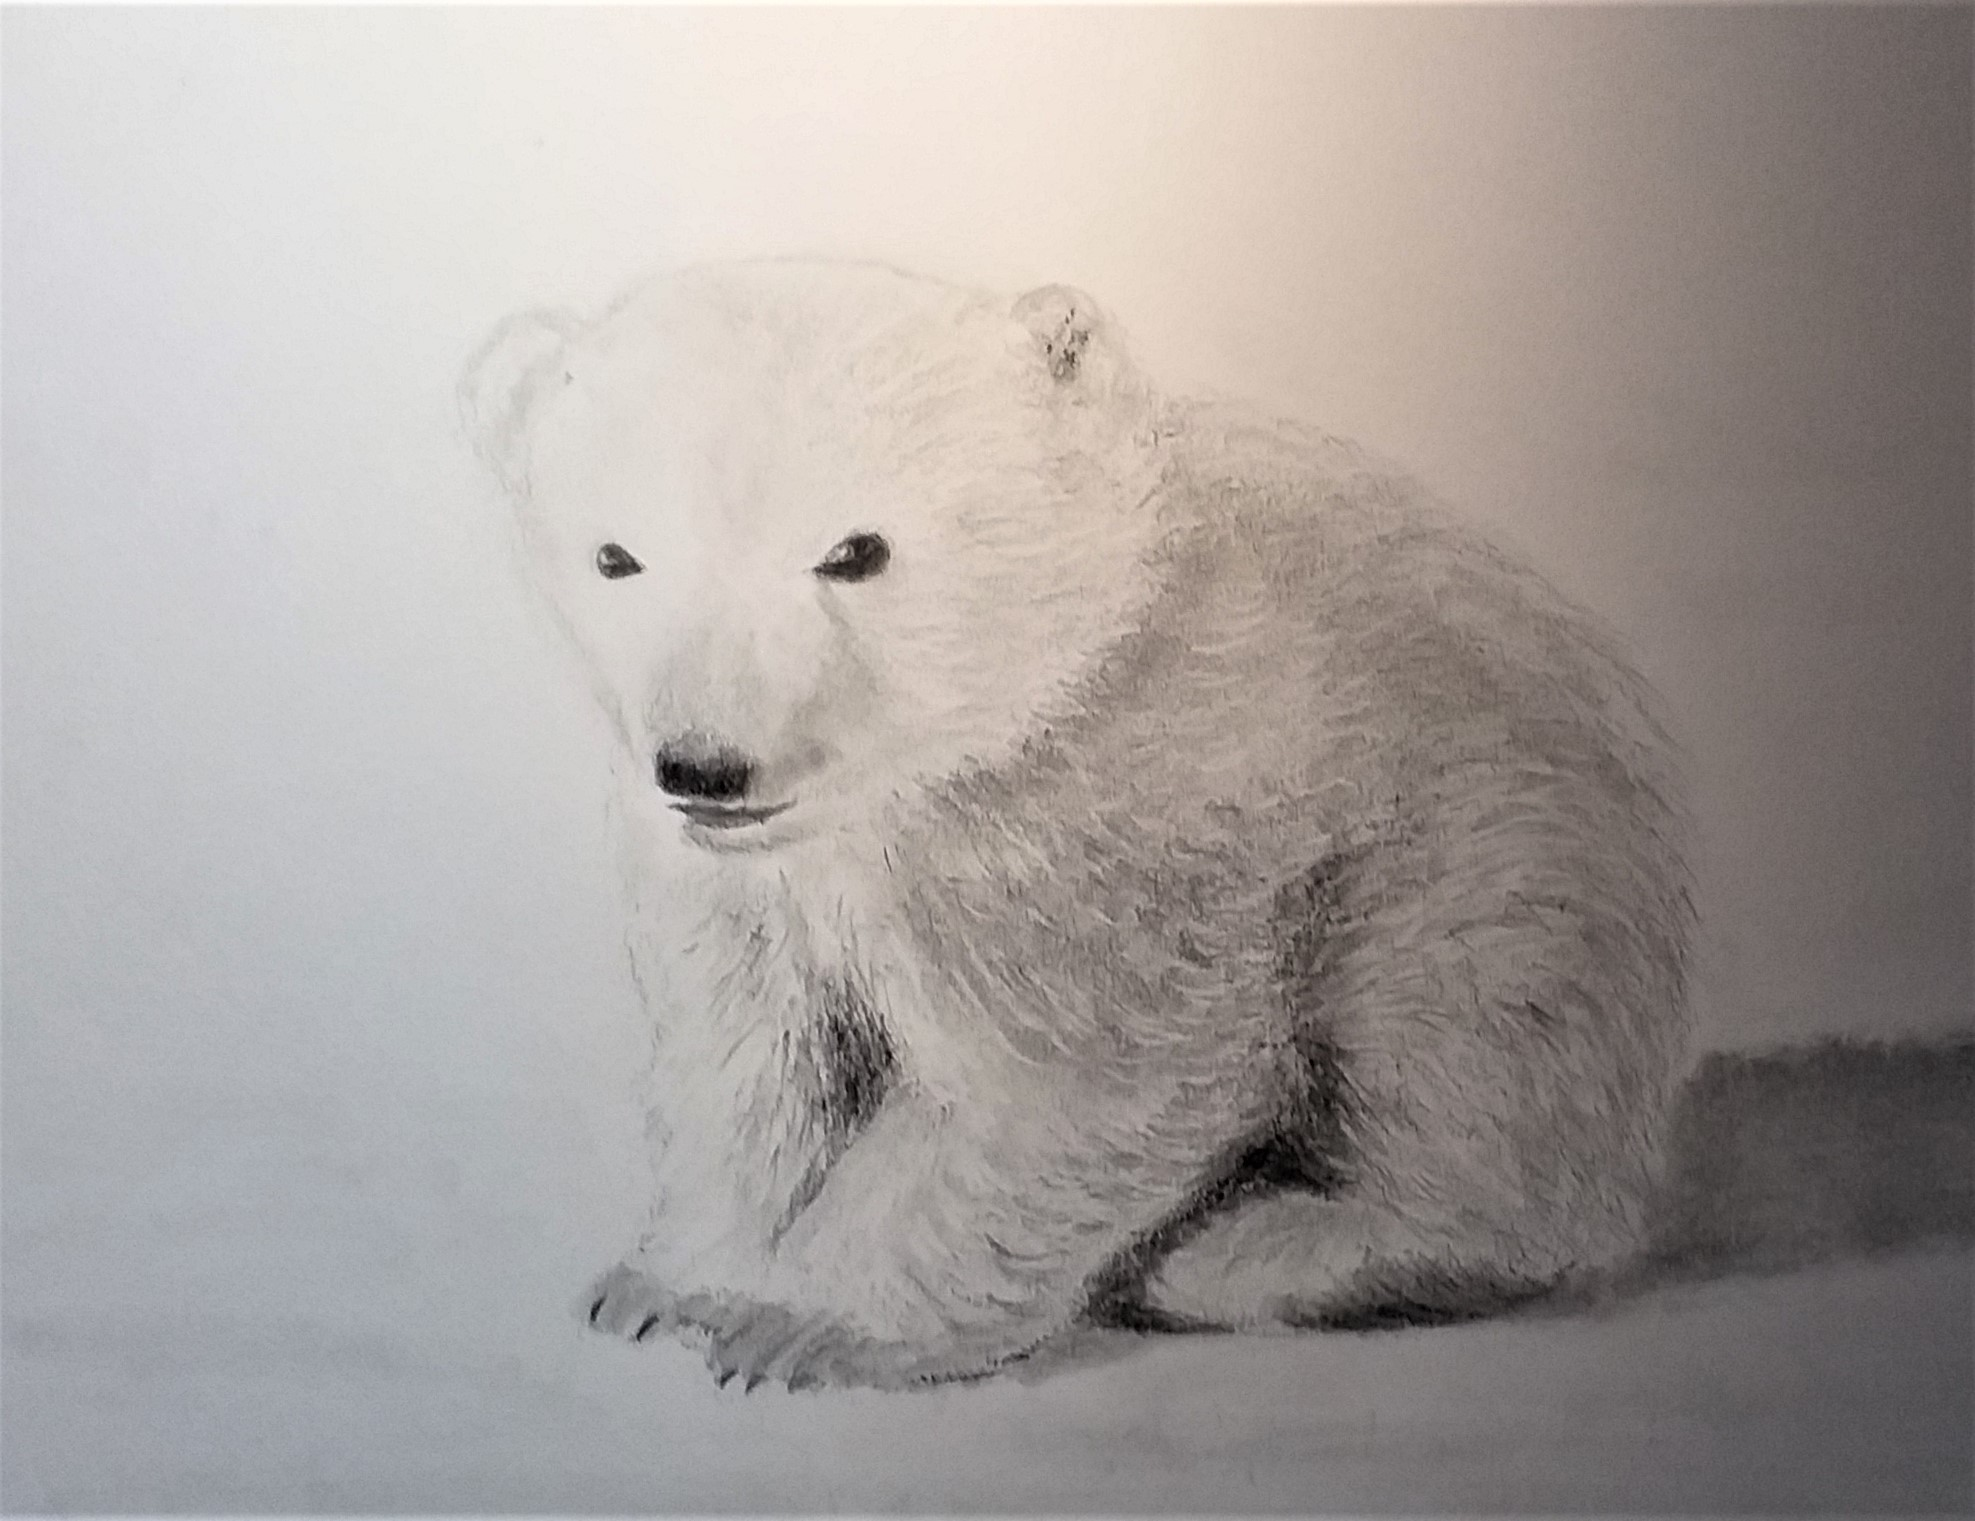 Learn how to draw animals at online art zoom course